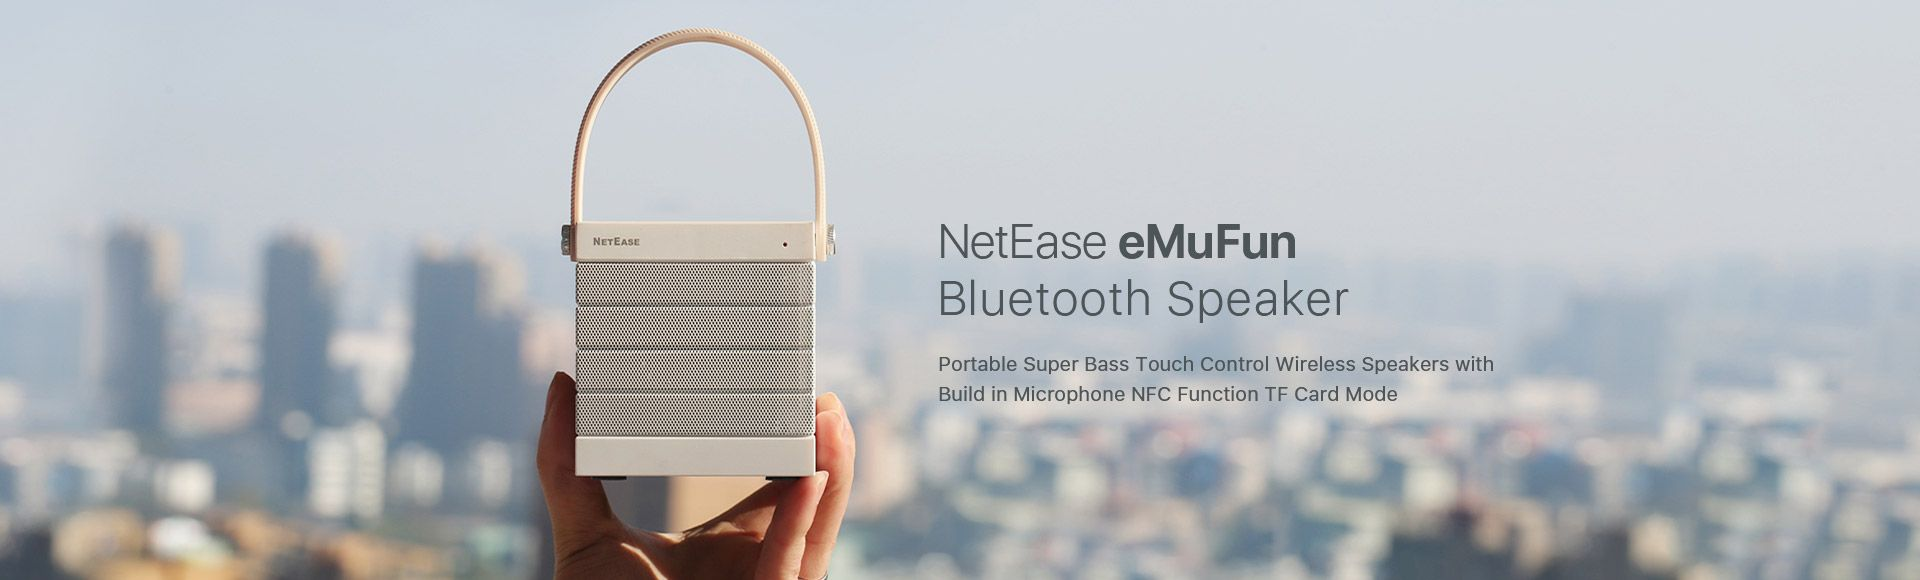 NetEase eMuFun Bluetooth Speaker - Portable Super Bass Touch Control Wireless Speakers with Build in Microphone NFC Function TF Card Mode